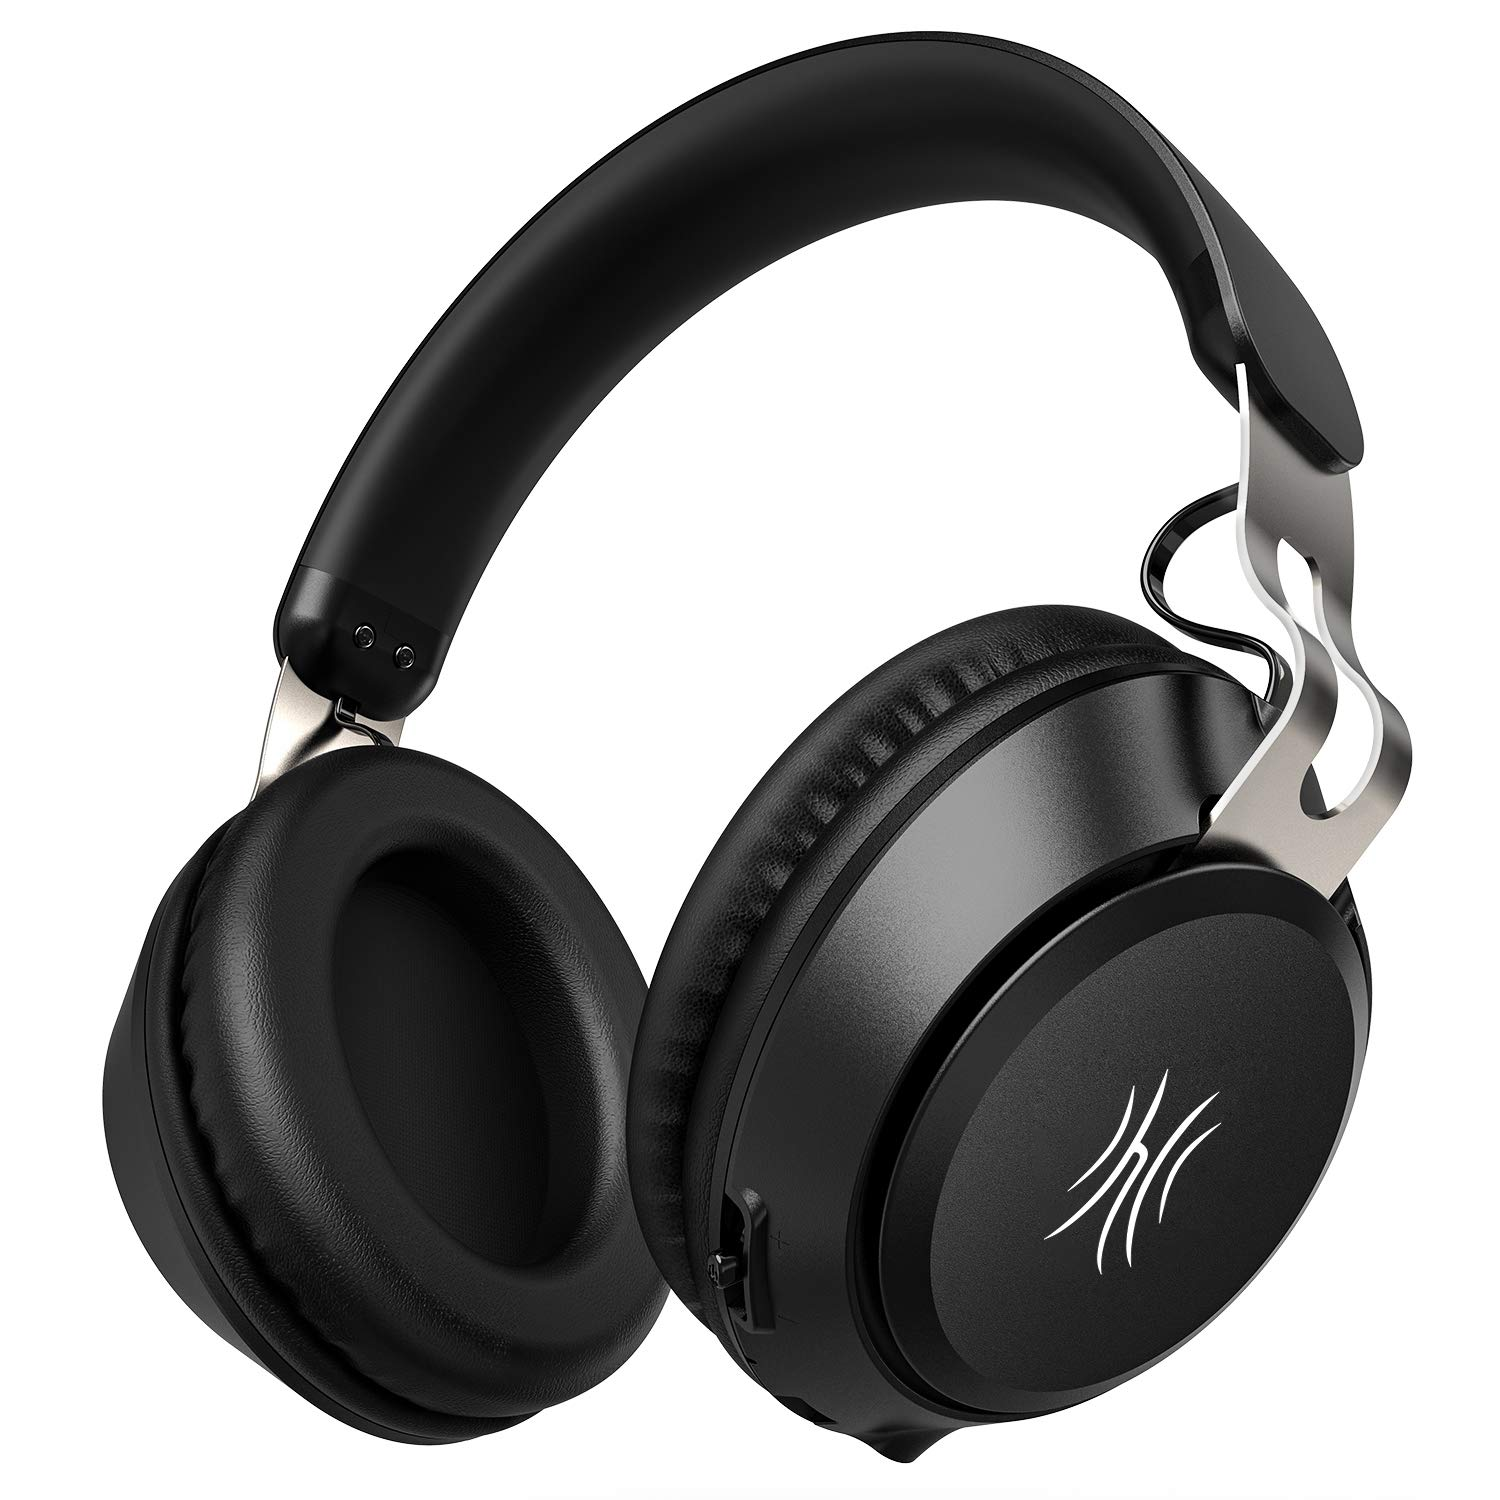 OneOdio Wireless Headphones Over Ear, 15Hr Play Time, Lightweight, Bluetooth 5.0 Hi-Fi Stereo Headphones with Built in Mic, Supports Hands-Free Calling and Wired Mode for iPhone/iPad/PC/Cell Phones/TV